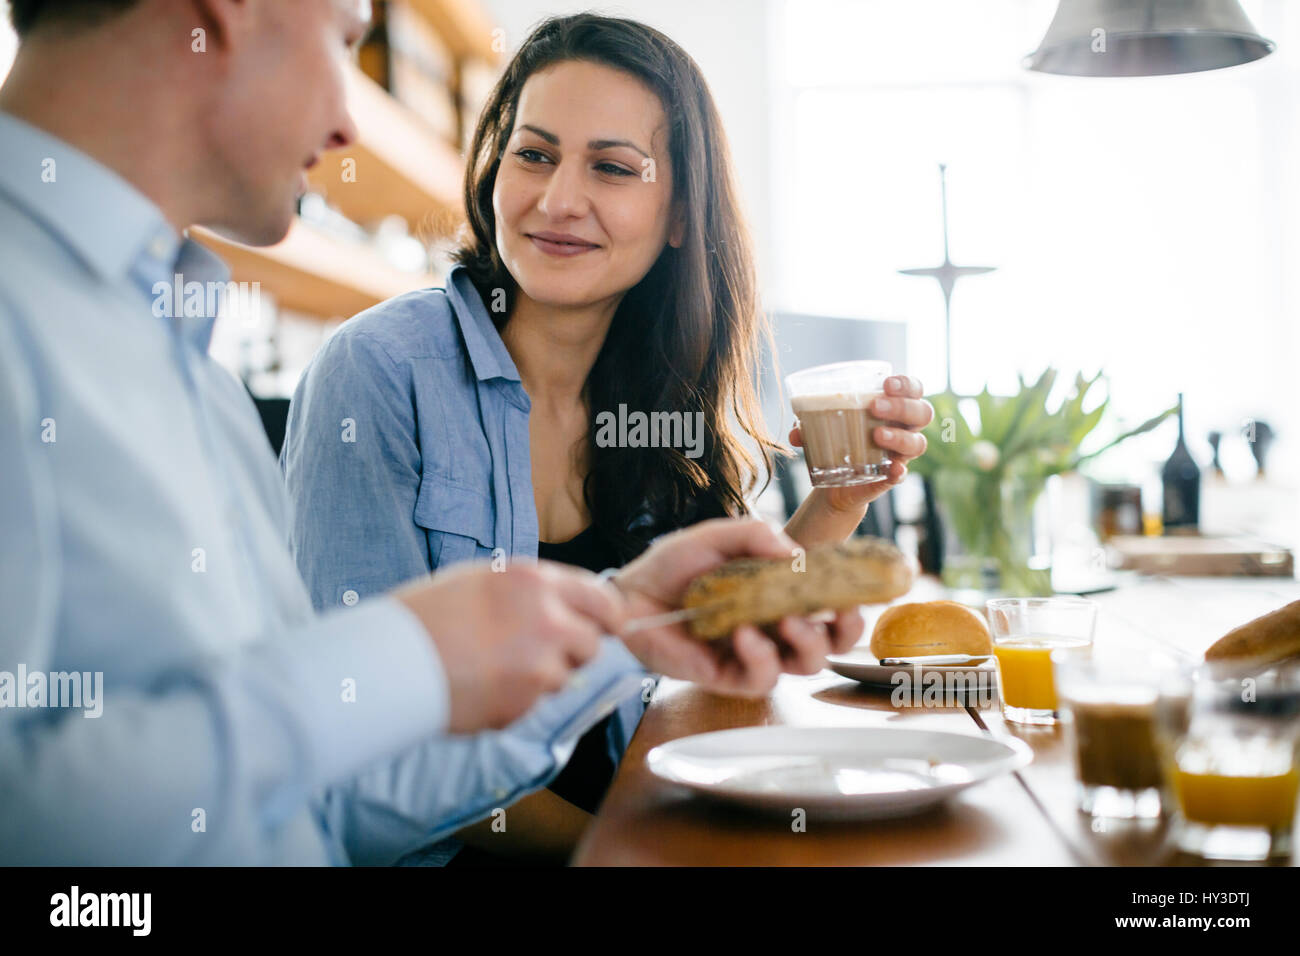 Allemagne, couple eating breakfast at table Photo Stock